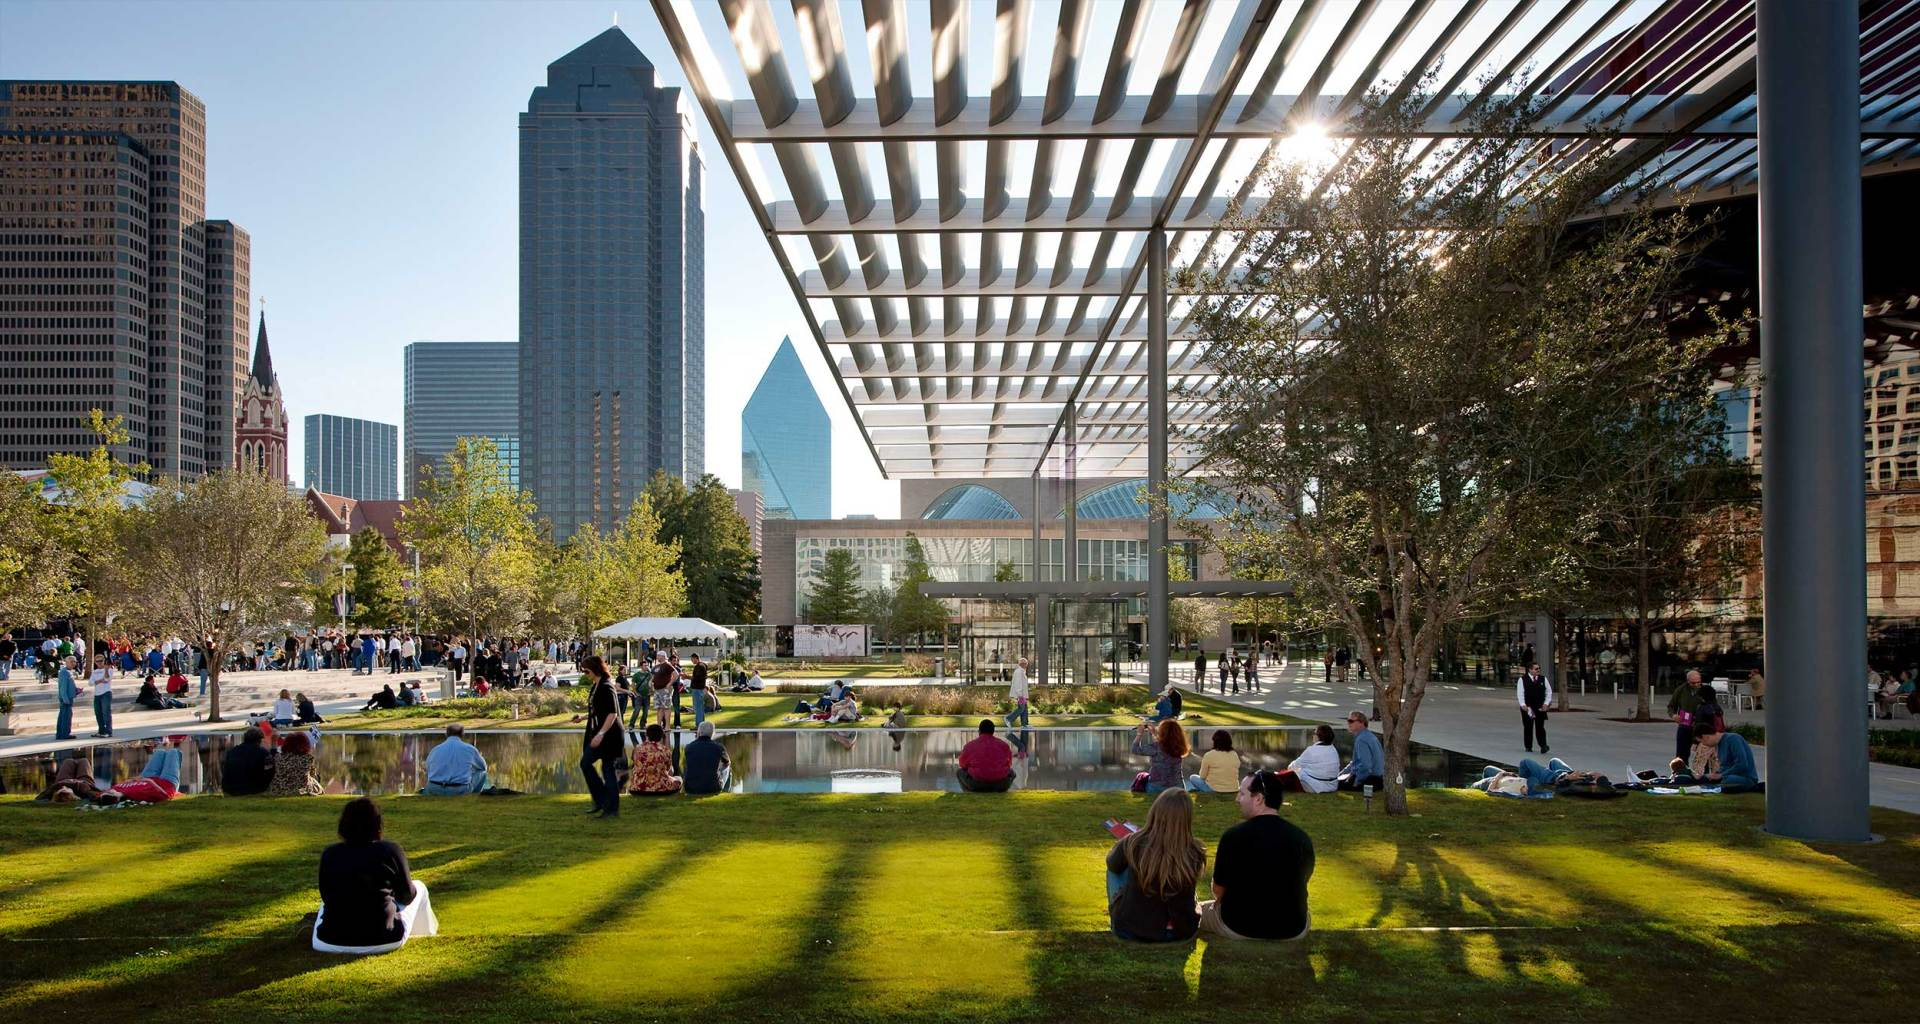 Public park in downtown Dallas, Texas, with trees, grass and shaded areas.